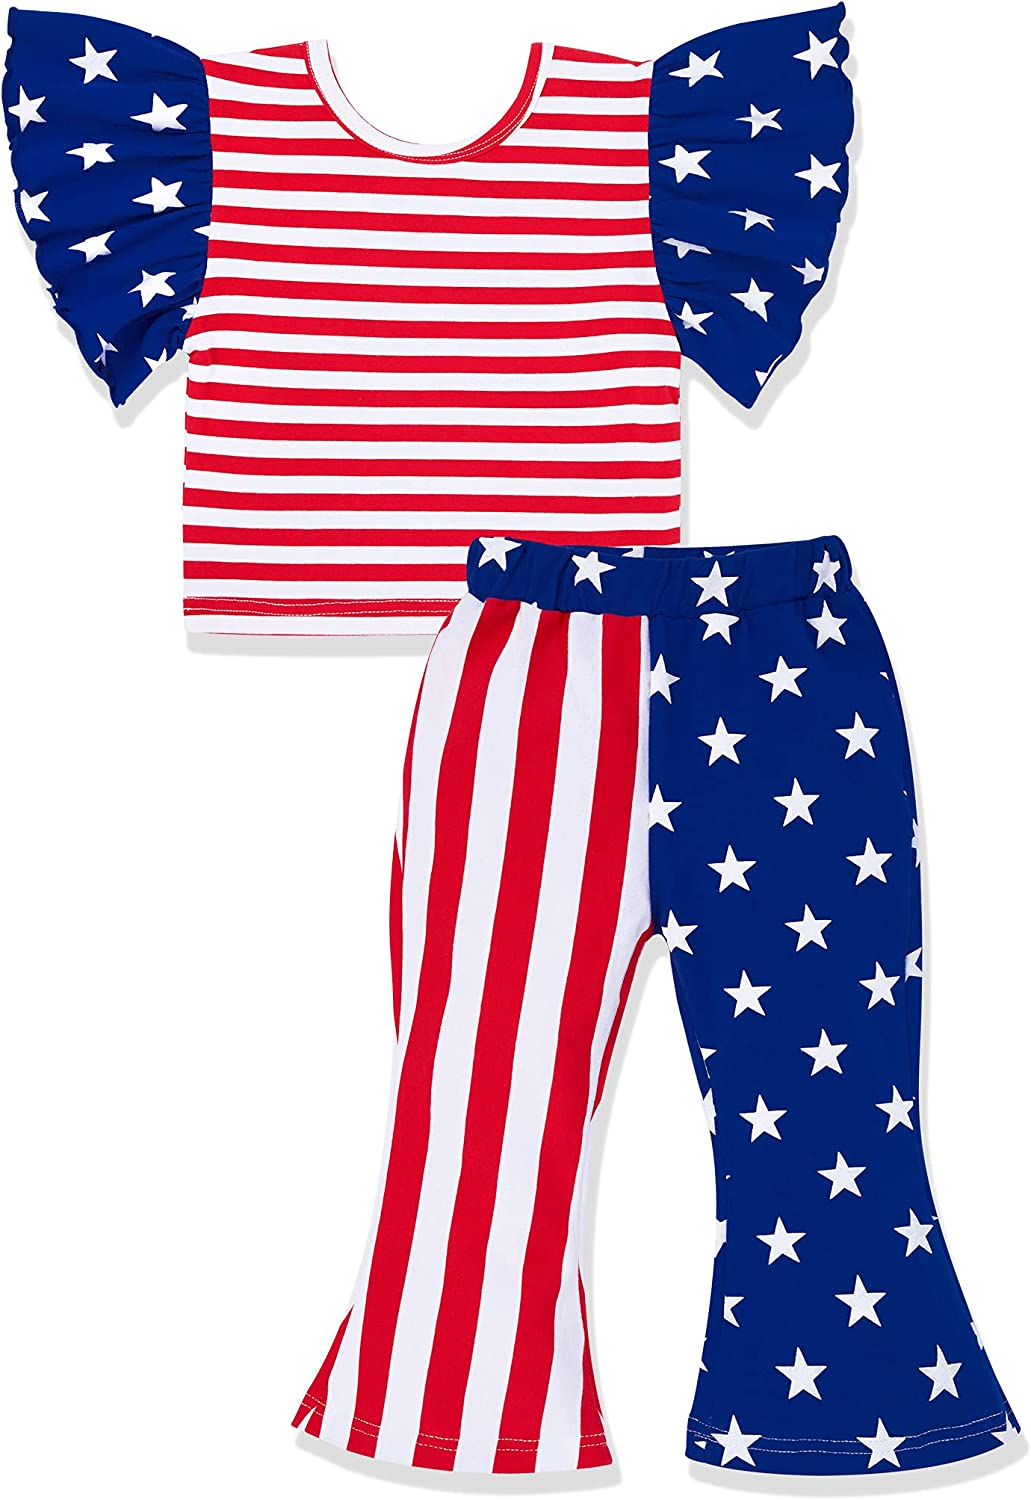 4th of July Toddler Girl Outfits Ruffle Sleeve Short Tops + the Stars and the Stripes Pants 2Pcs